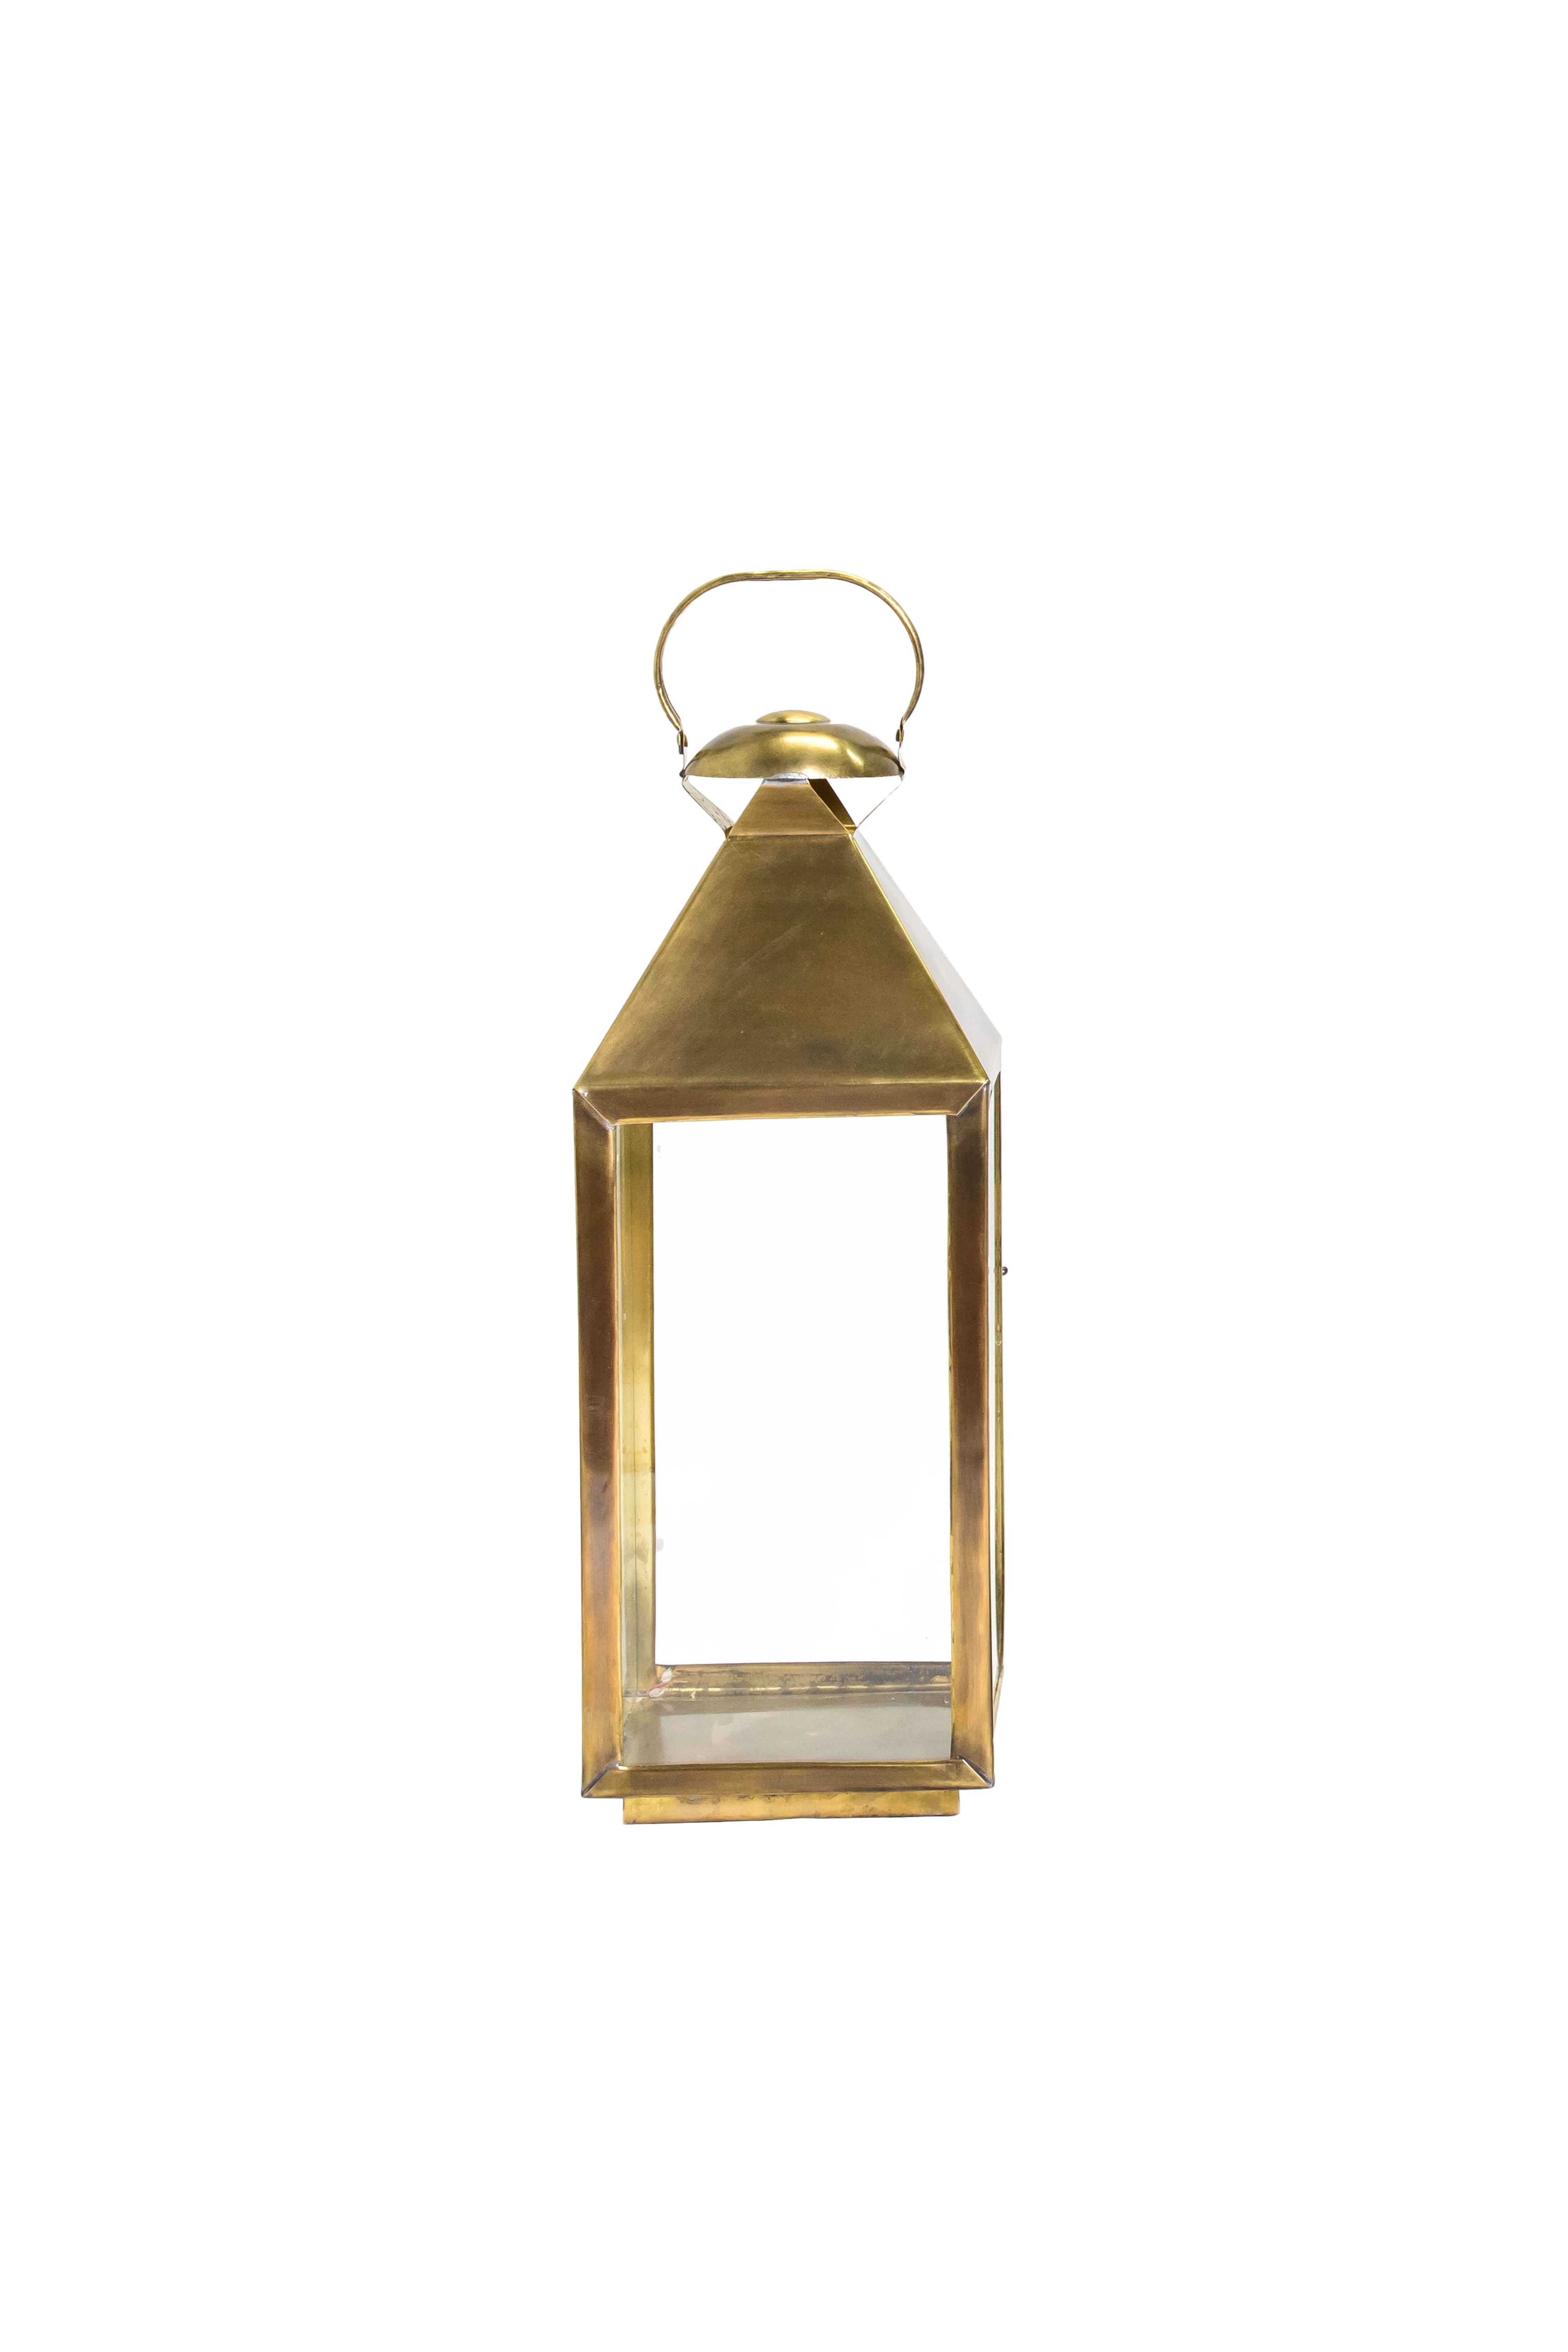 Moroccan Lantern in small bronze